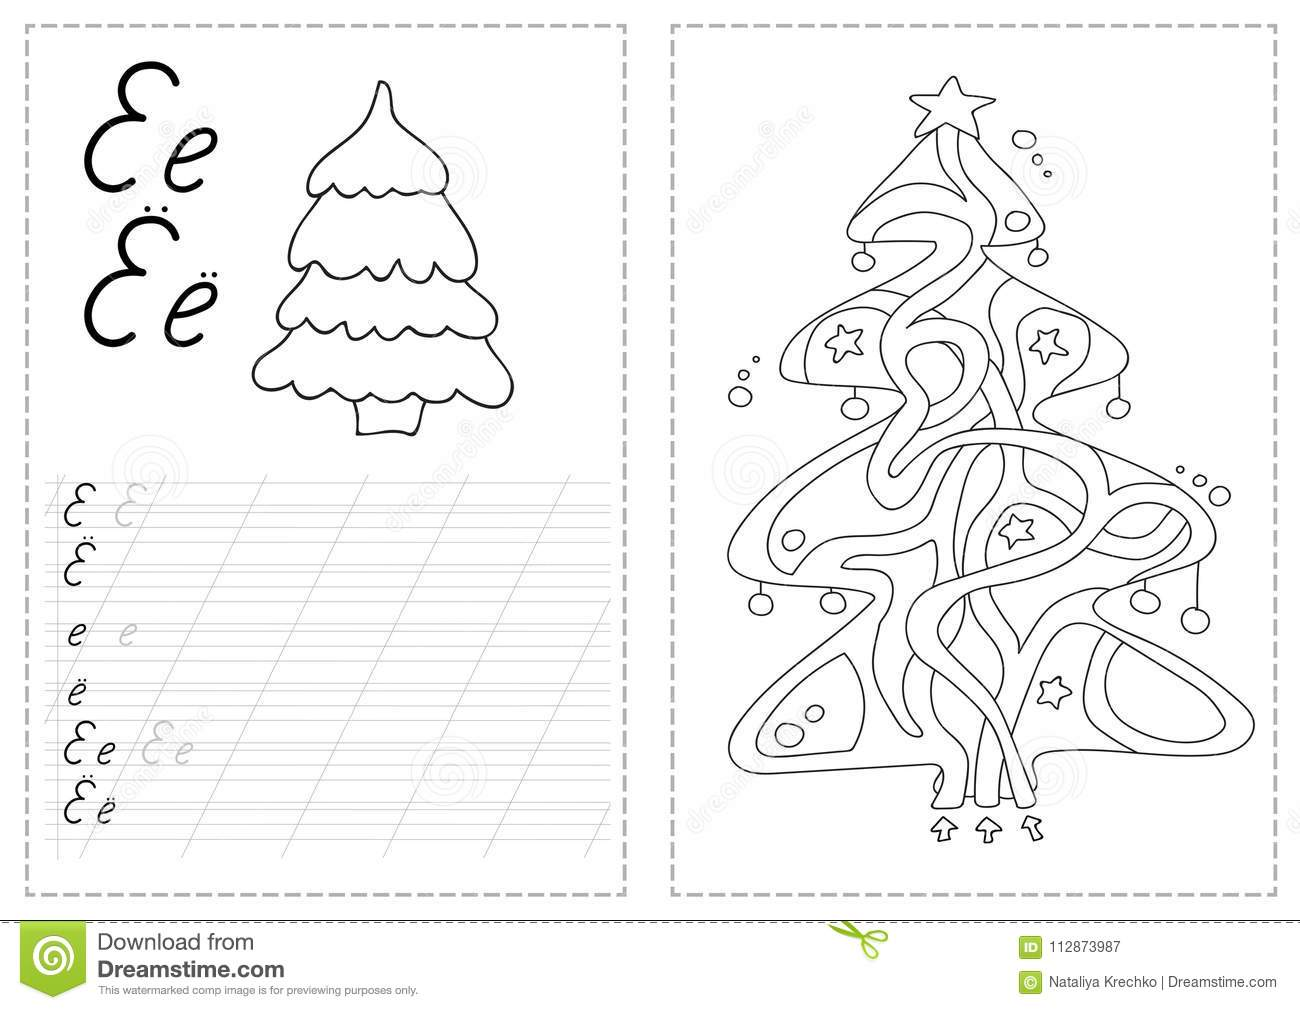 Alphabet Letters Tracing Worksheet With Russian Alphabet Letters Christmas Tree Stock Vector